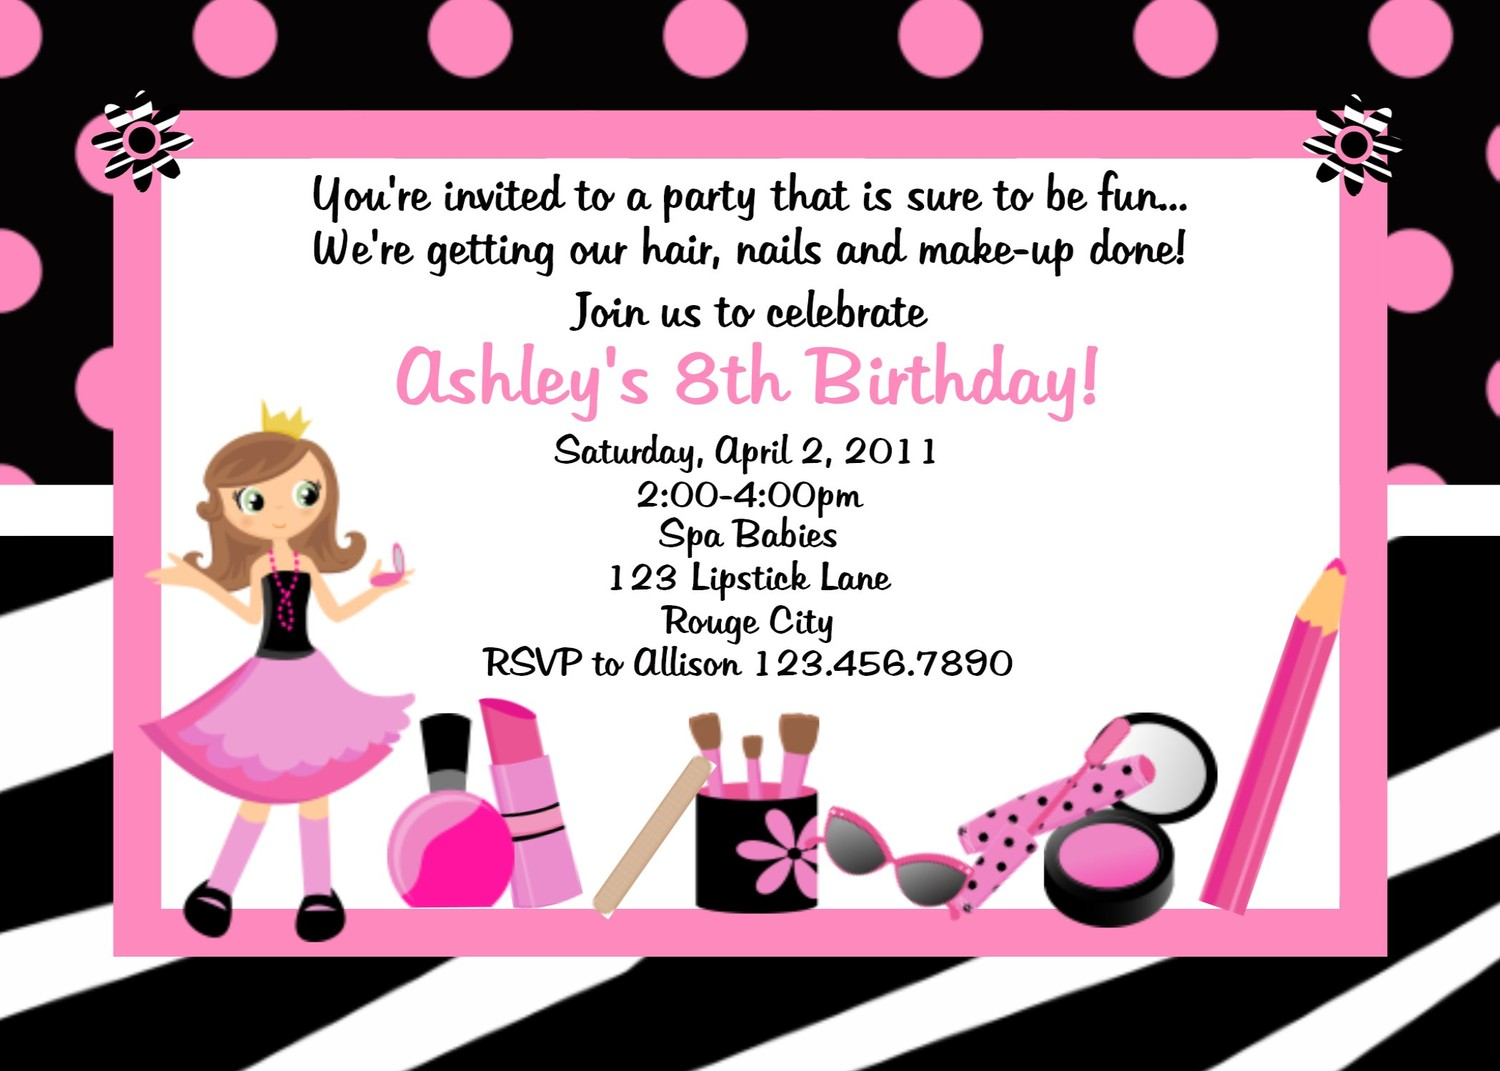 Printable birthday invitations spa party girls printable birthday invites stopboris